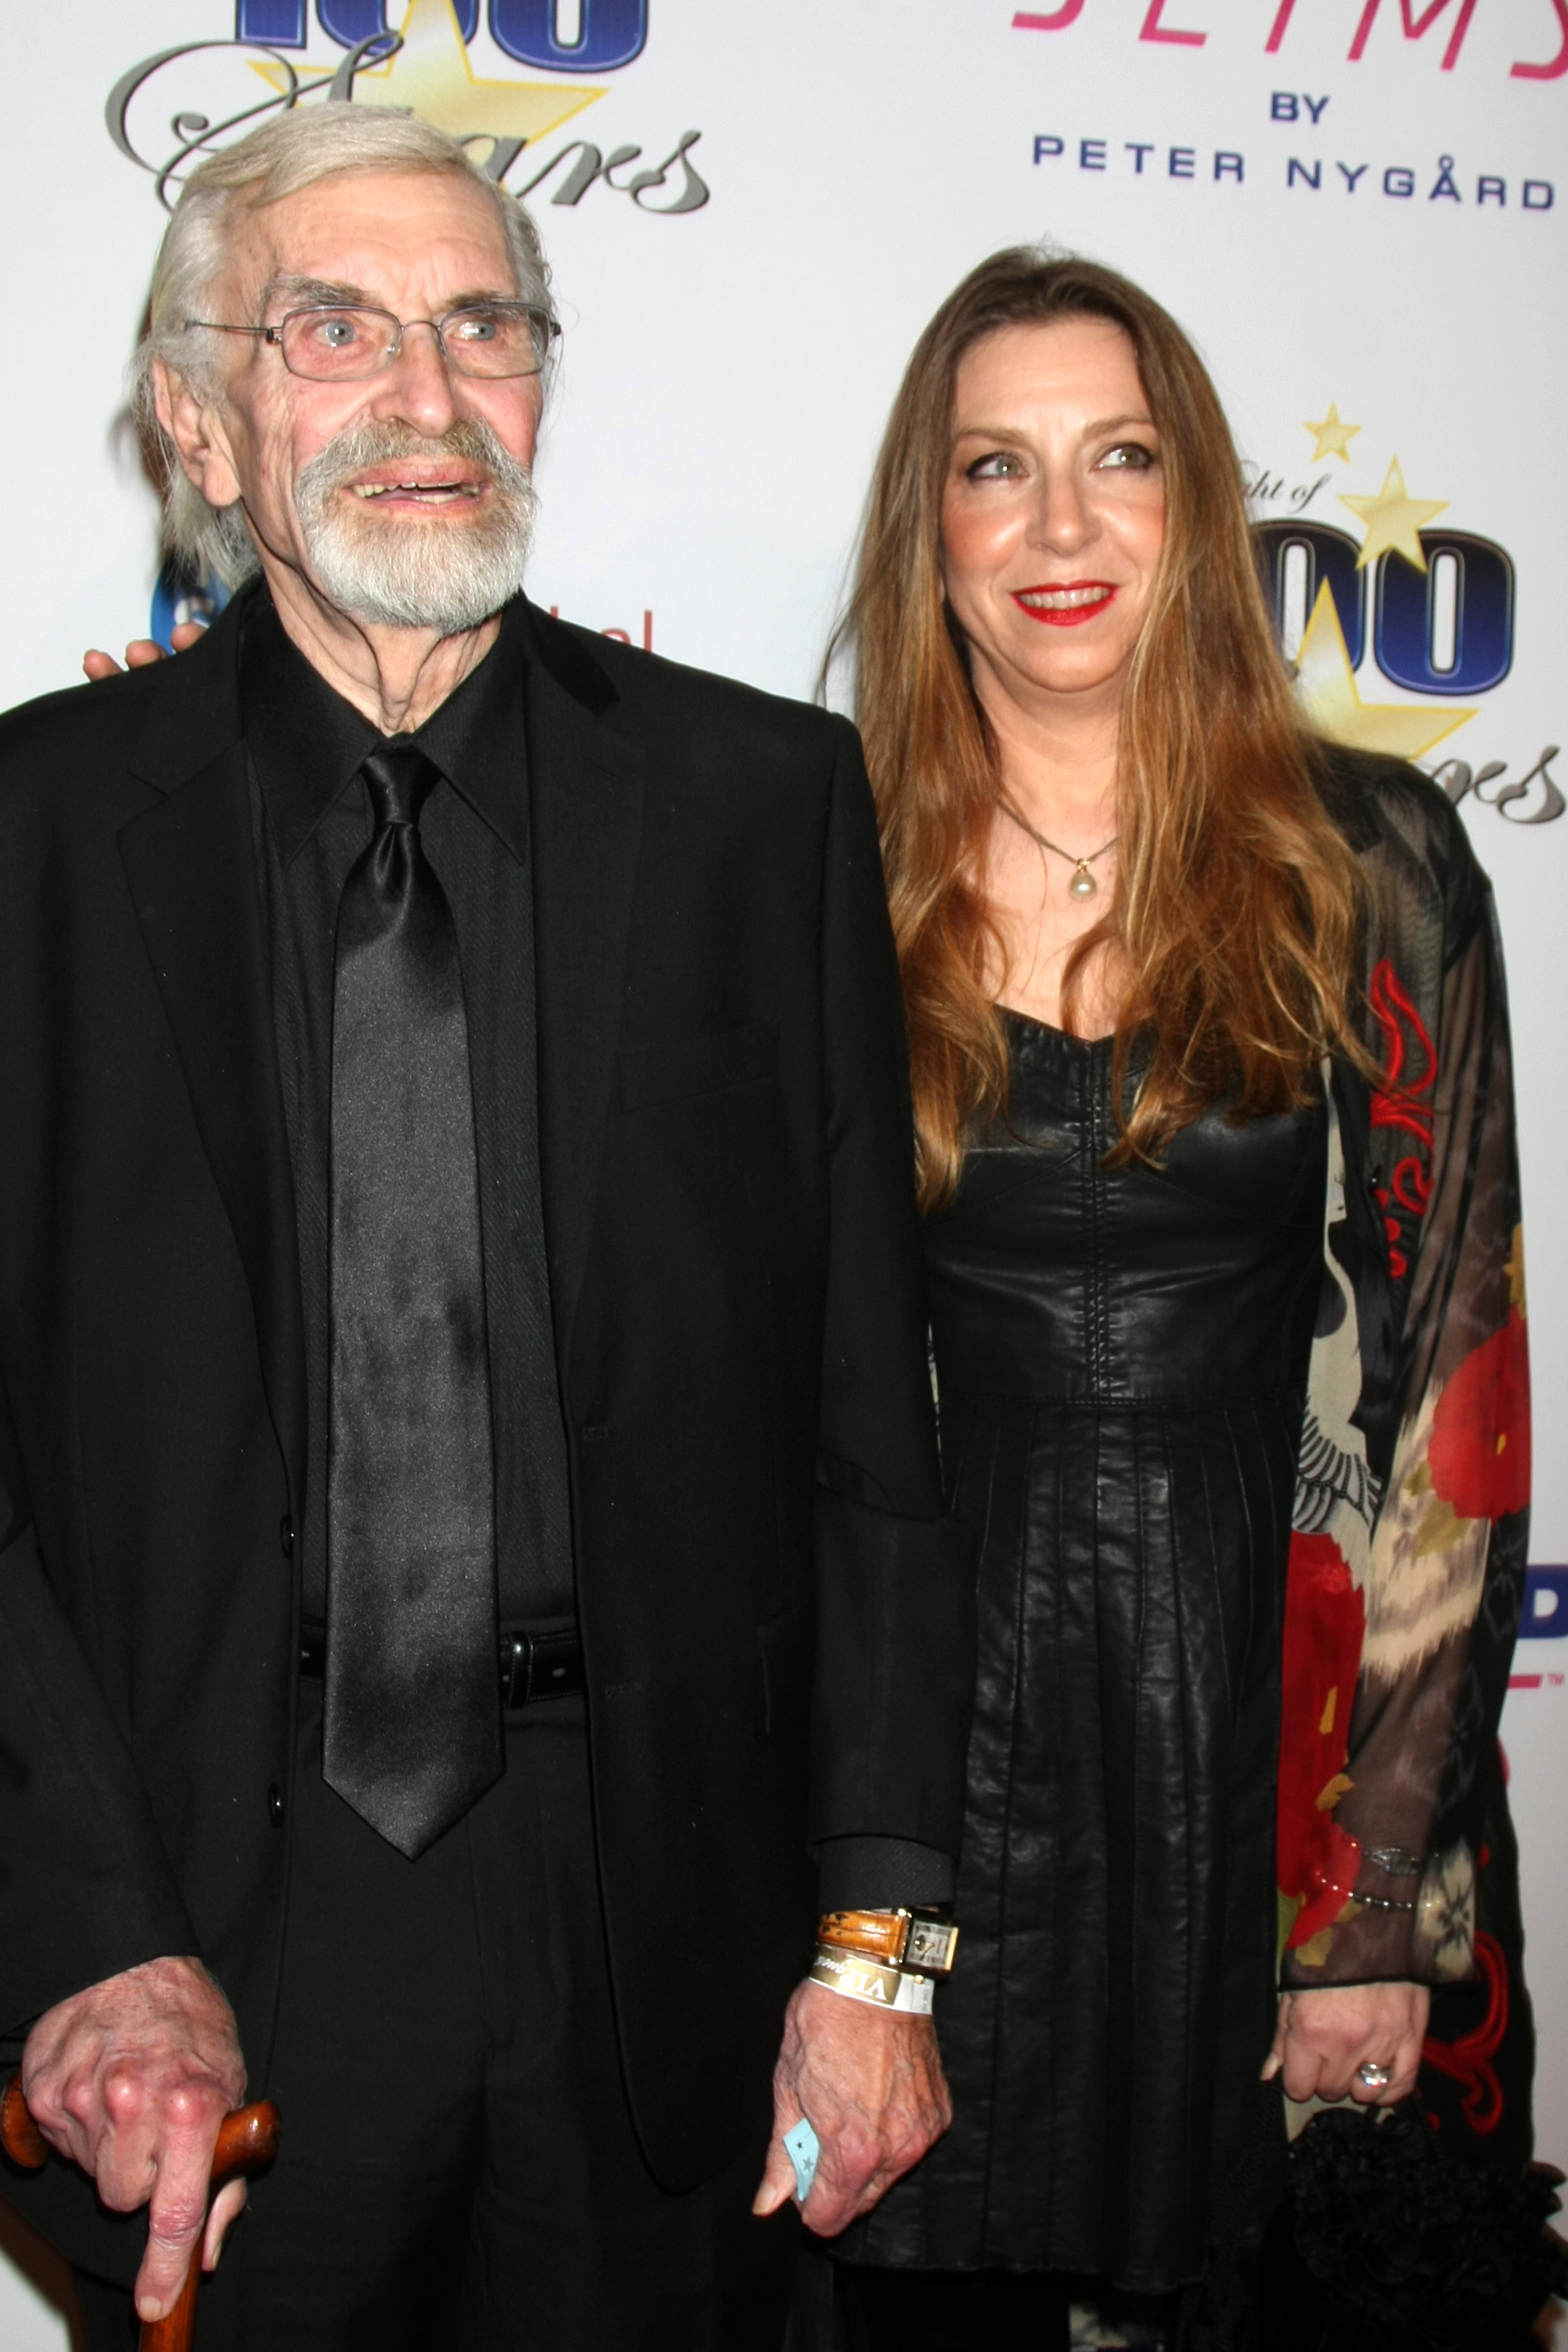 Norby Walters' Night 0f 100 Stars Oscar Viewing Party  Featuring: Martin Landau, daughter Where: Beverly Hills, California, United States When: 22 Feb 2015 Credit: Nicky Nelson/WENN.com